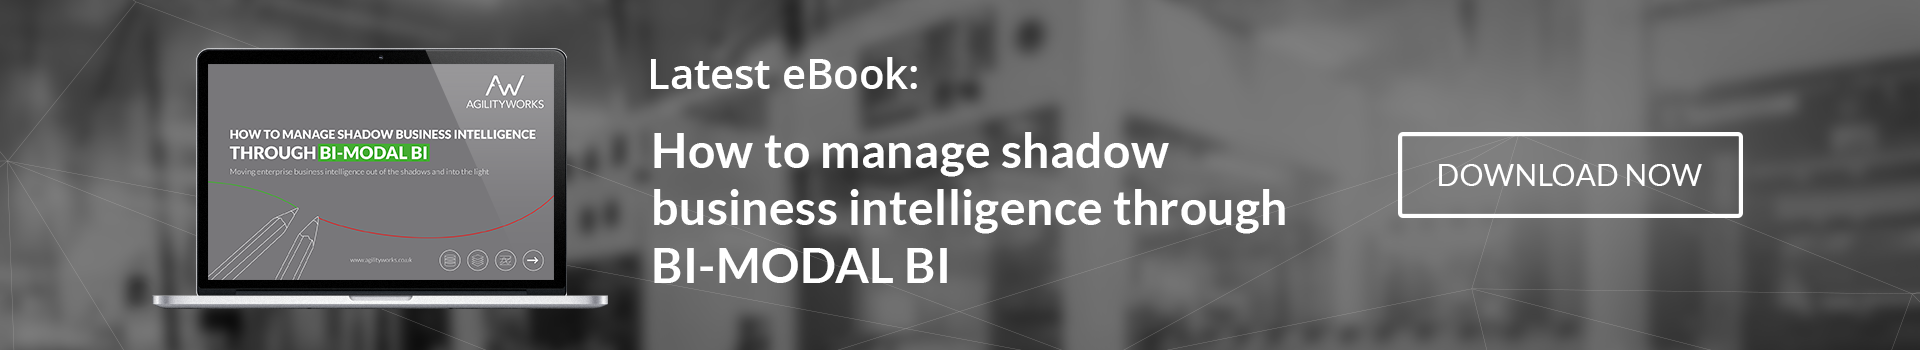 How to manage shadow business intelligence through Bi-Modal BI